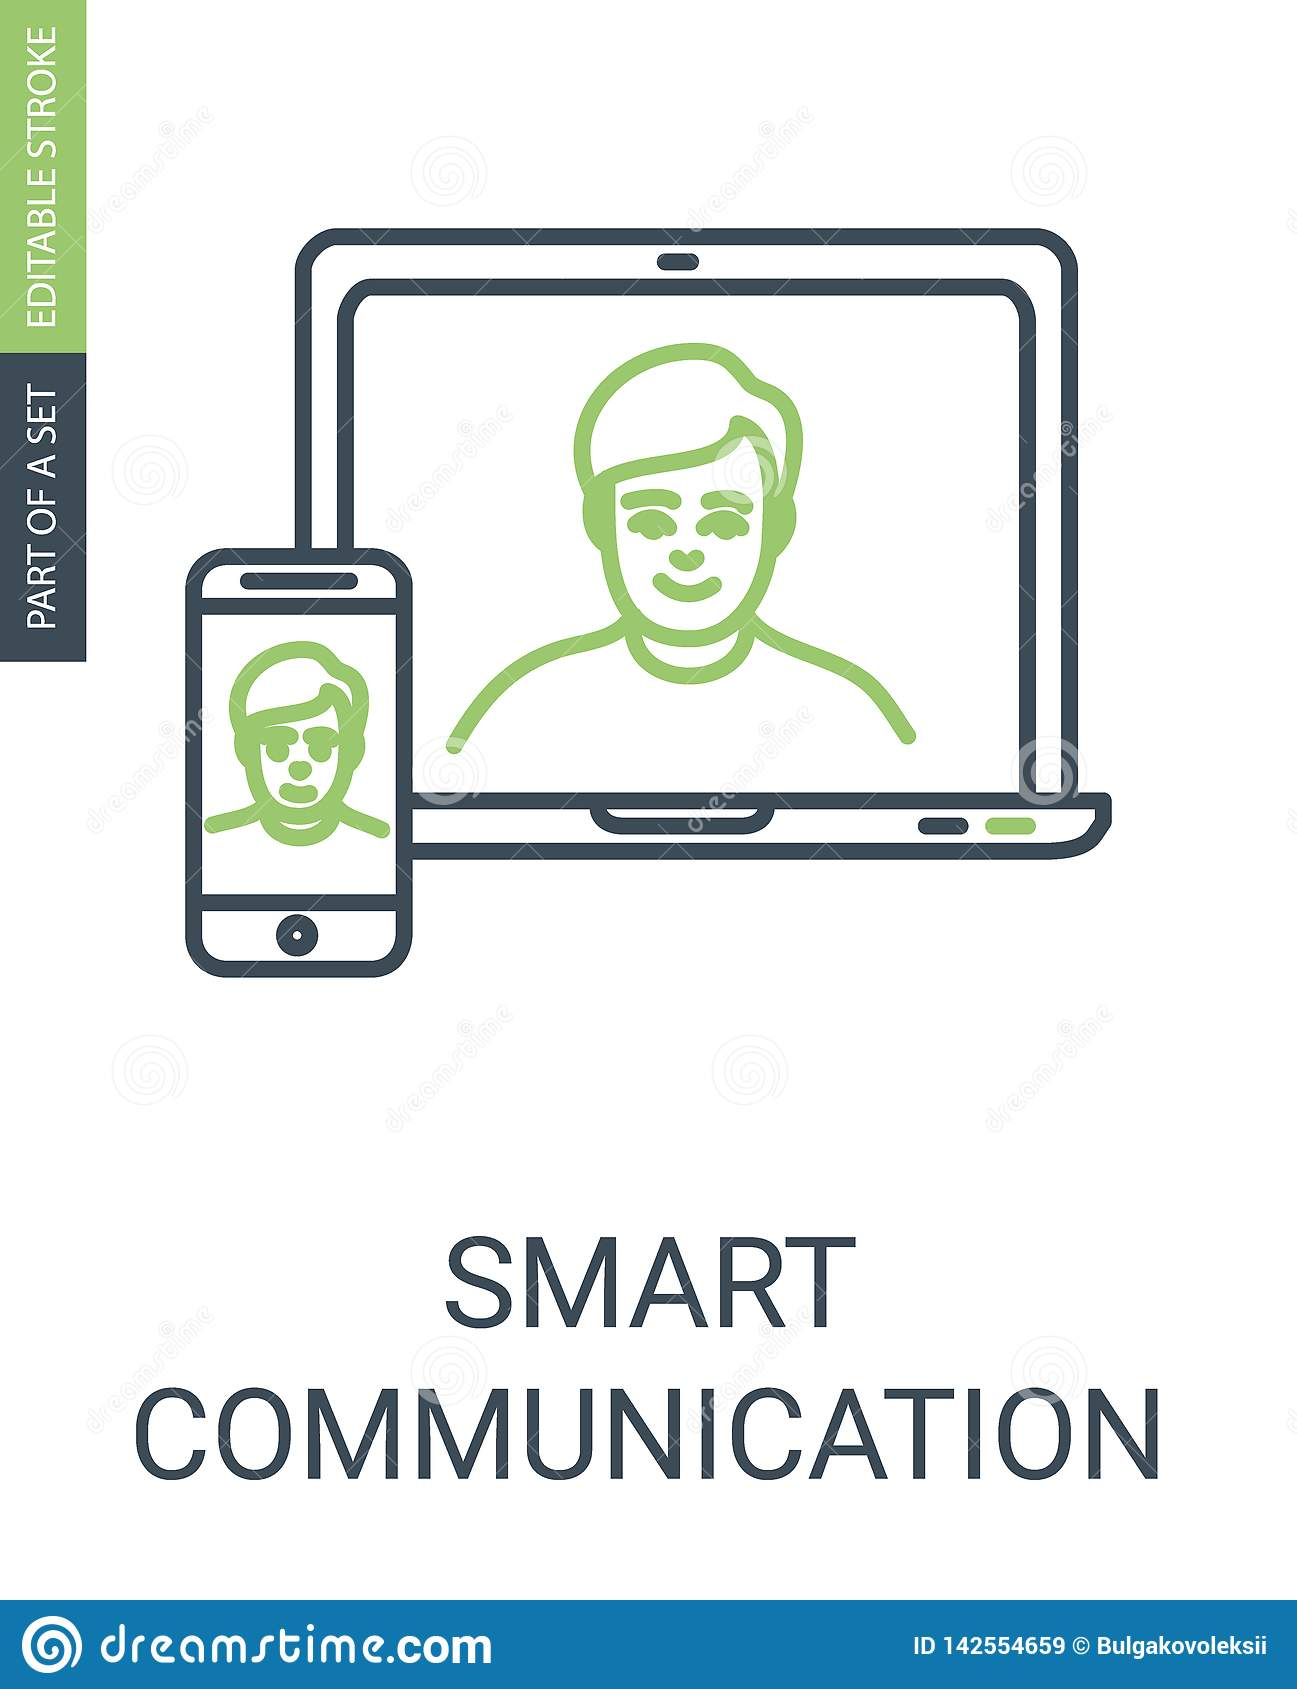 Communication Vector Icon with Laptom and Phone